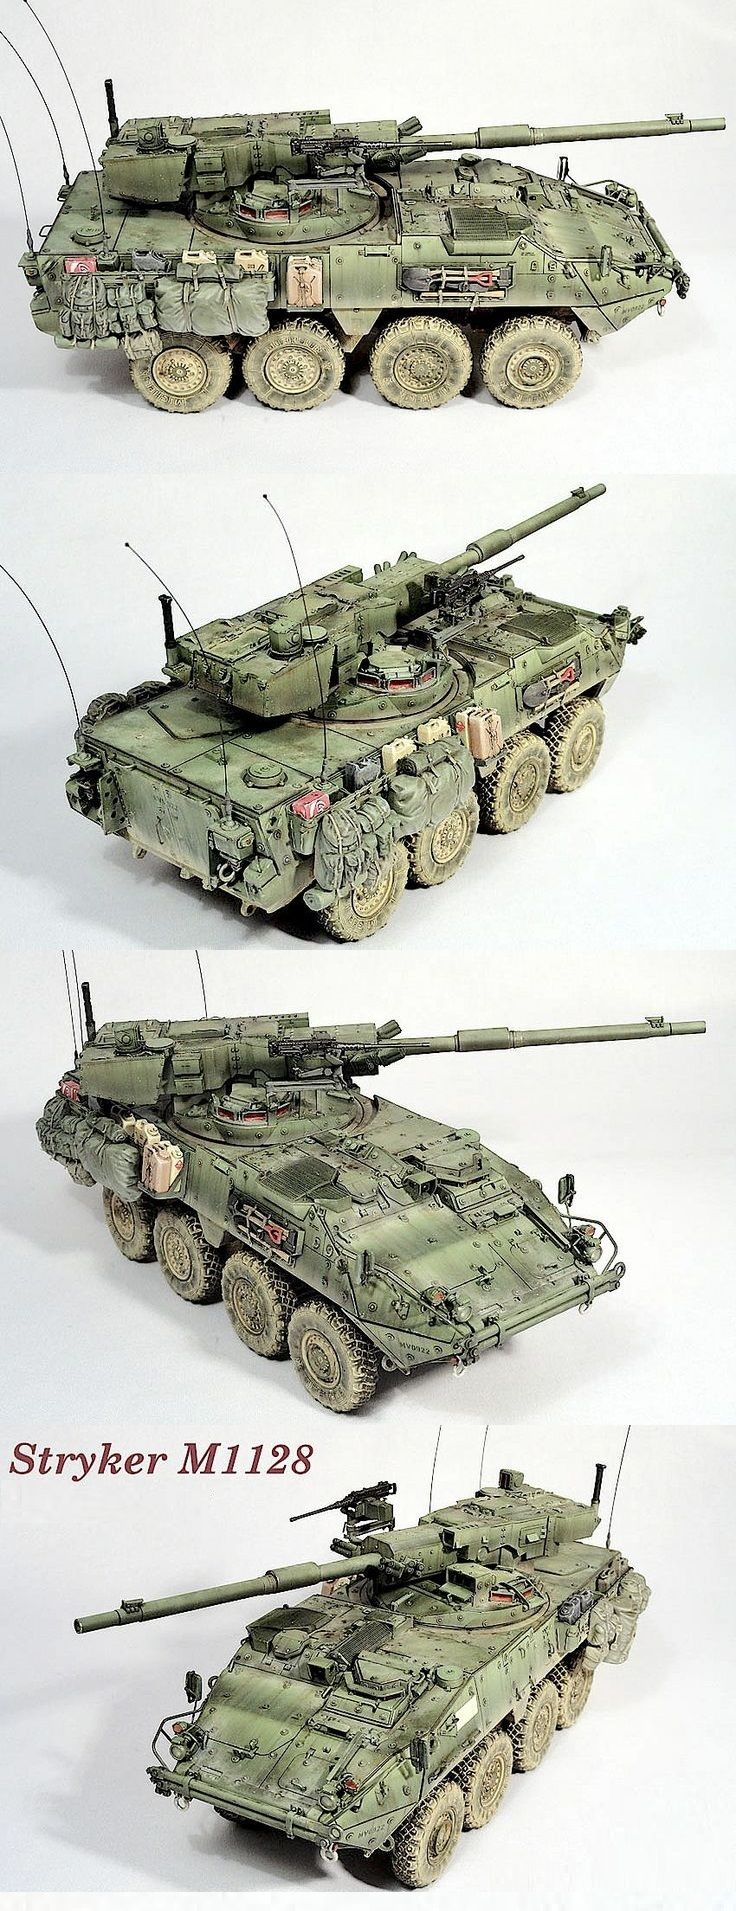 M1128. Very well thought through and executed. Fading technique is just bang on. It's really helping tho shape the model and make it look like it's actually full scale size